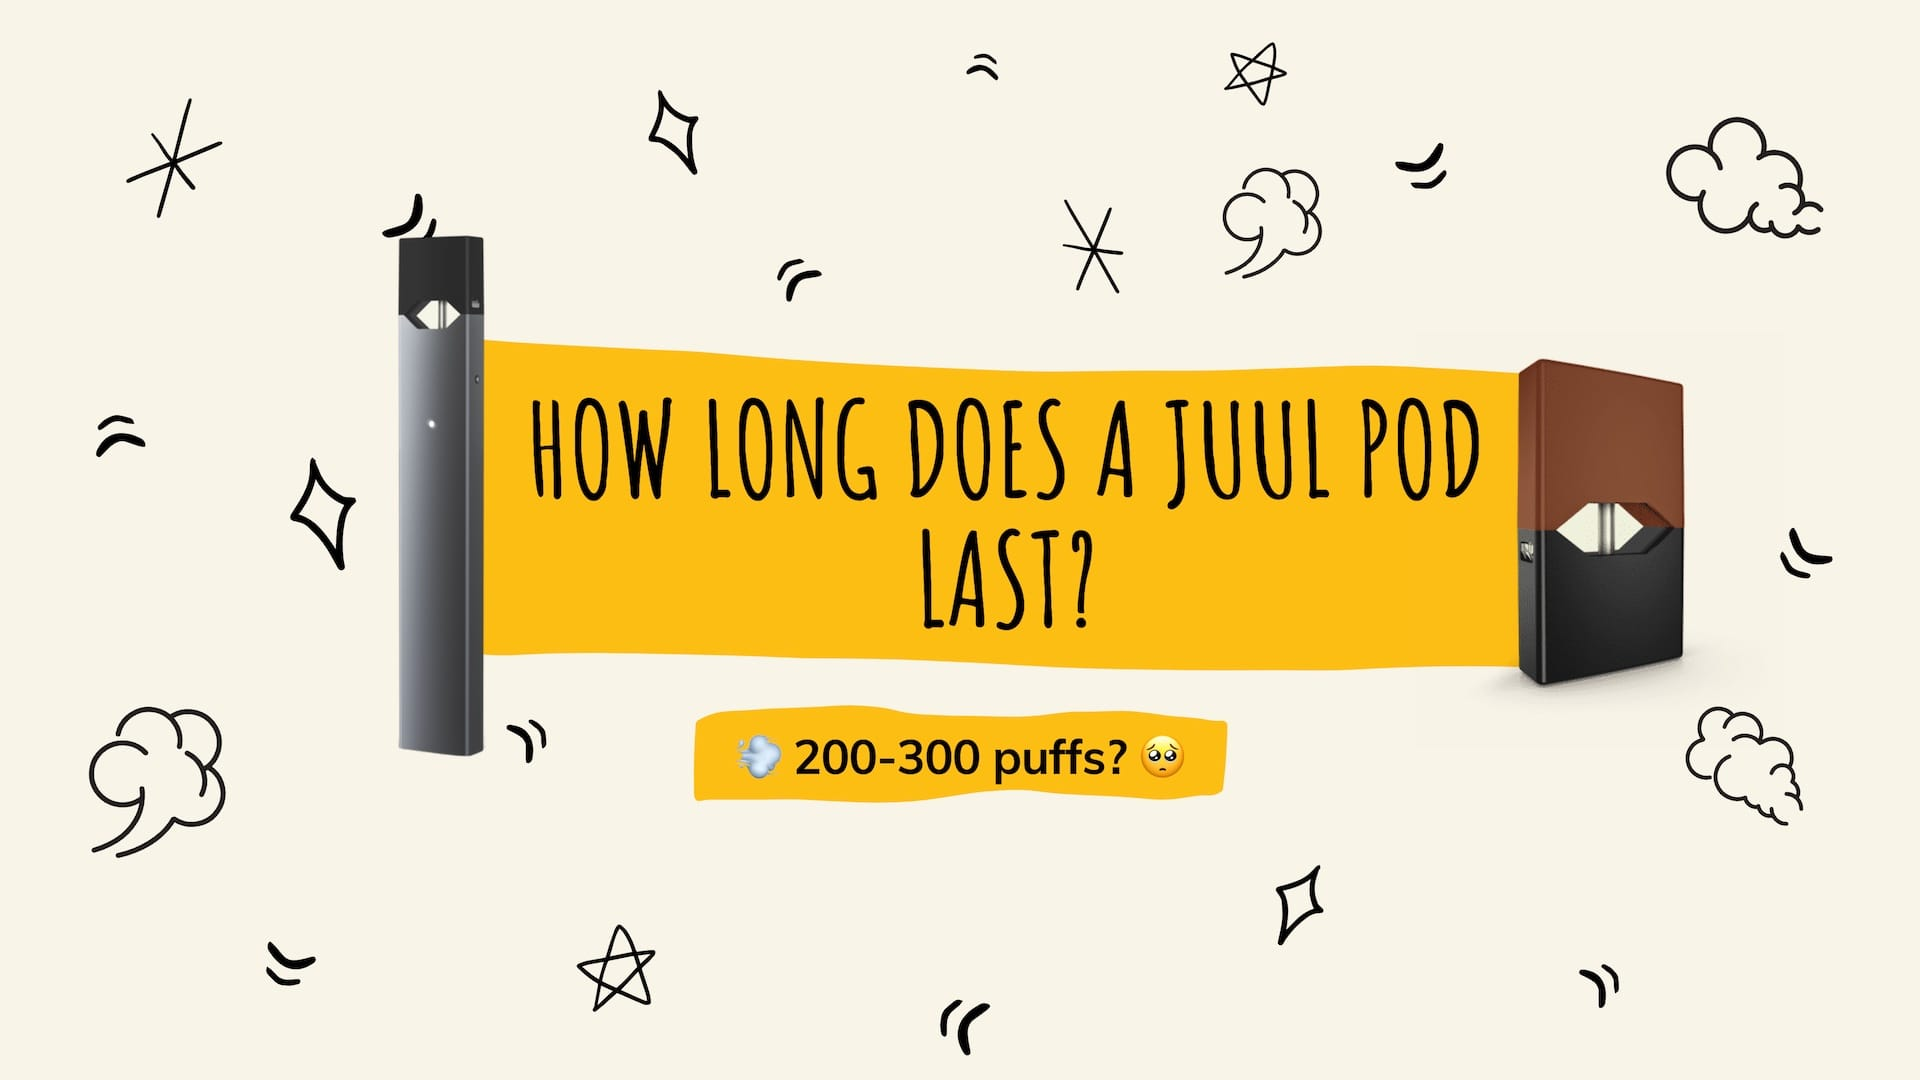 how long does a juul pod last